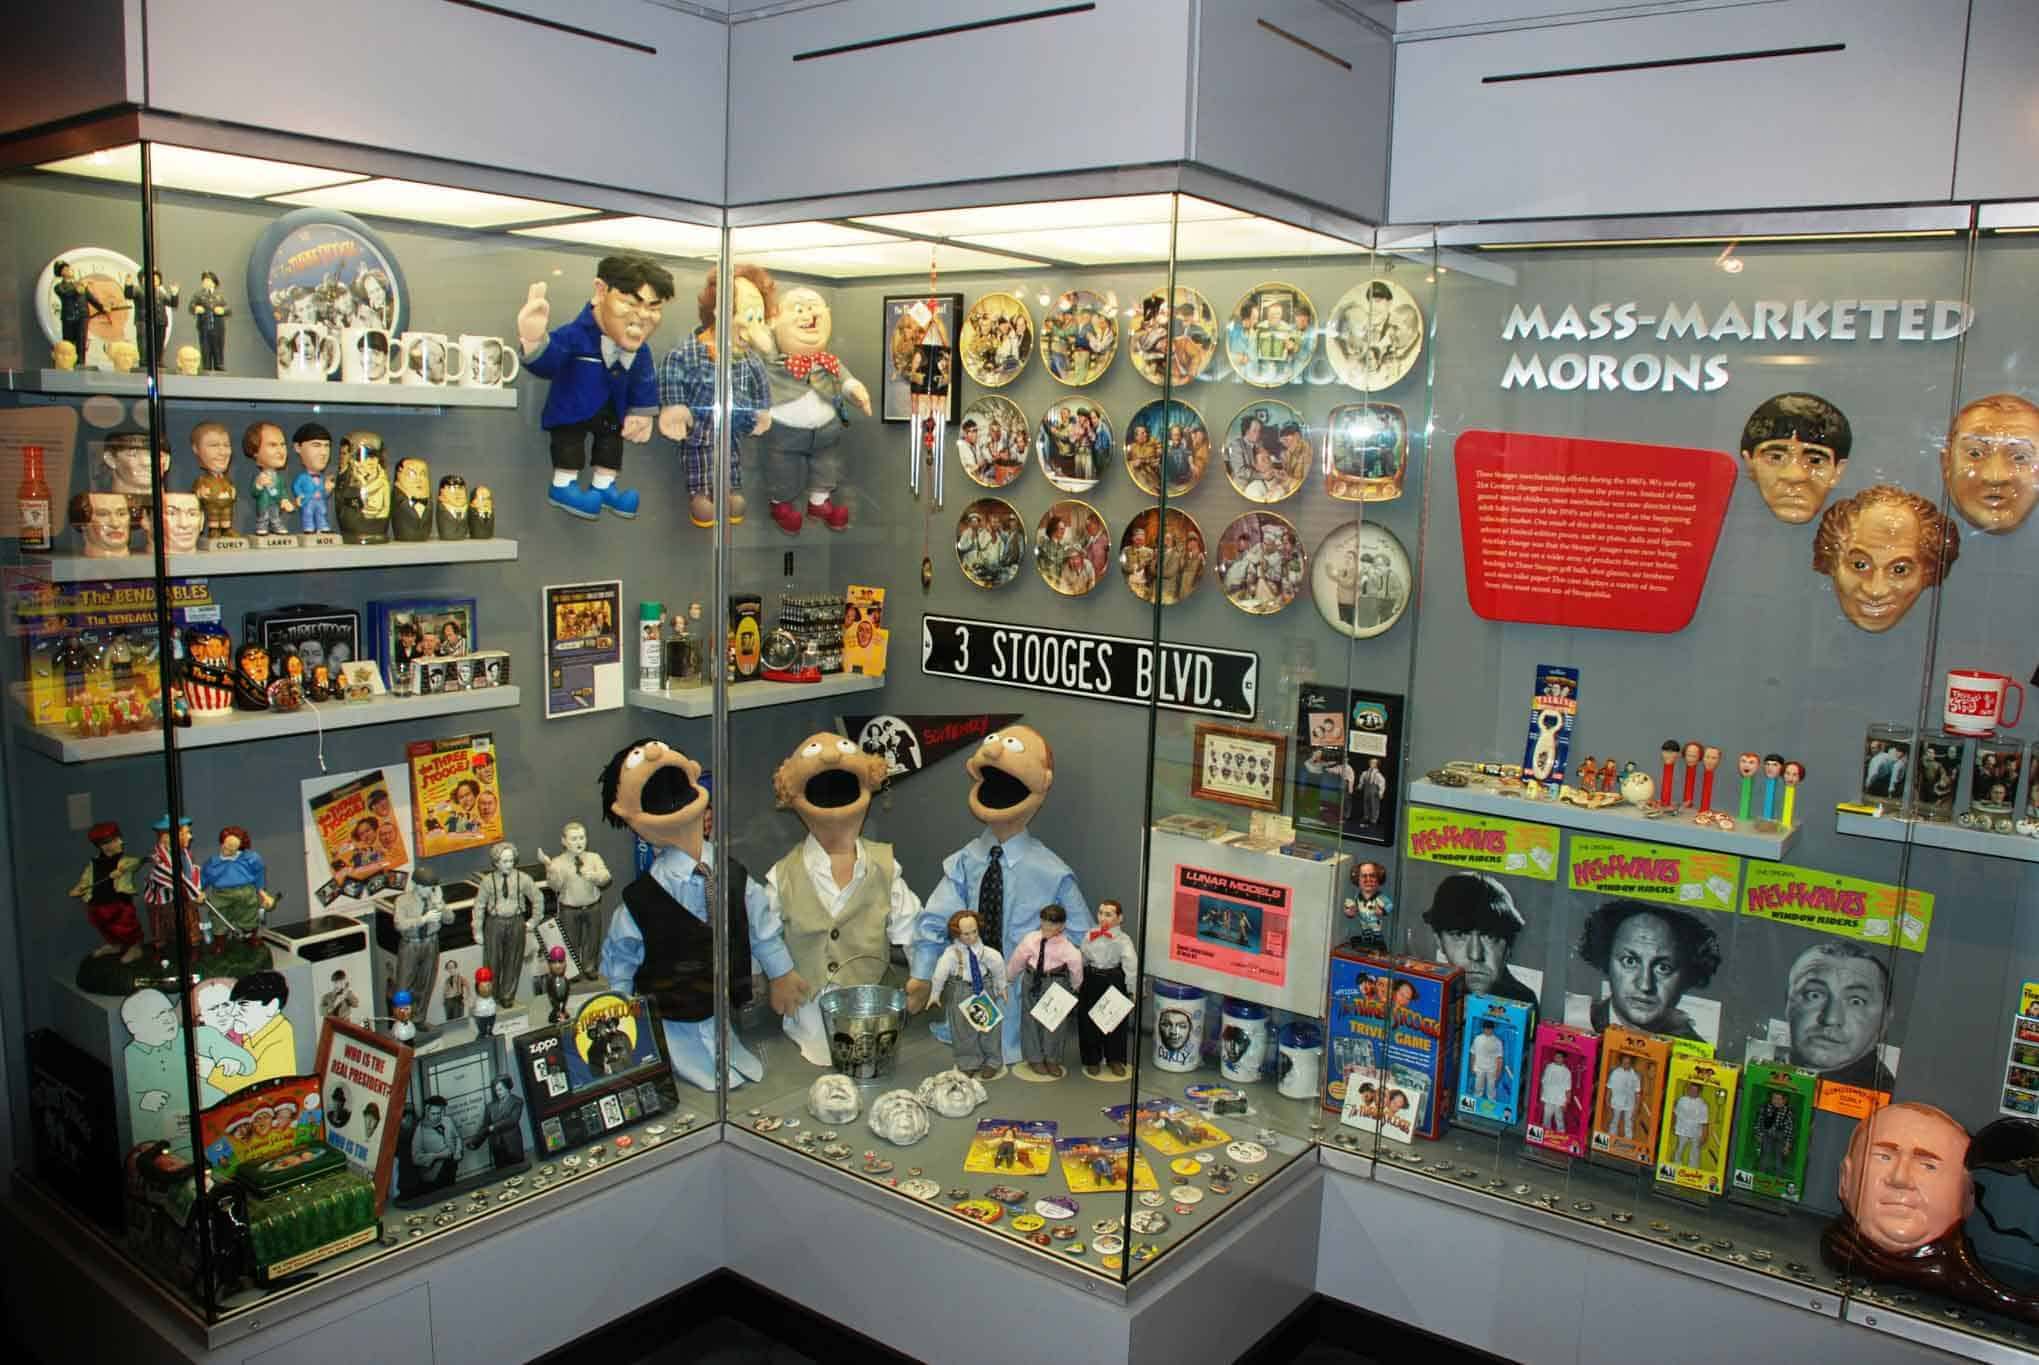 Display cases of show merchandise and collectibles.